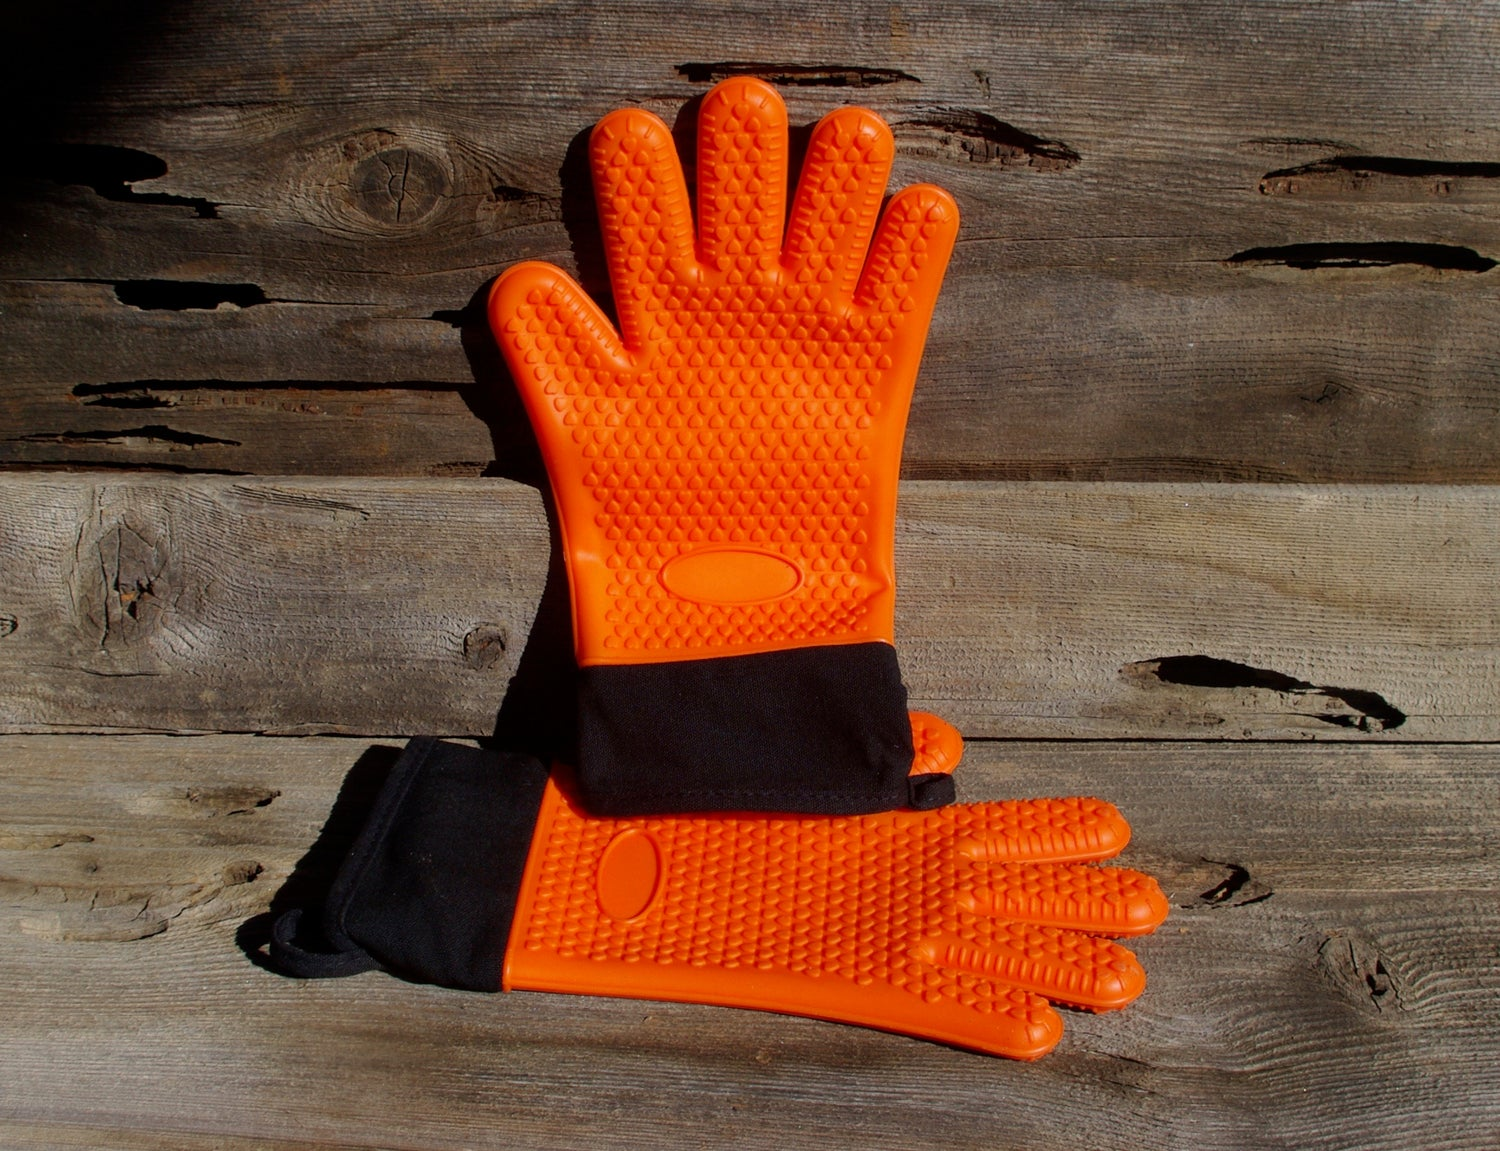 Image of Silicone Heat Resistant Grilling Gloves